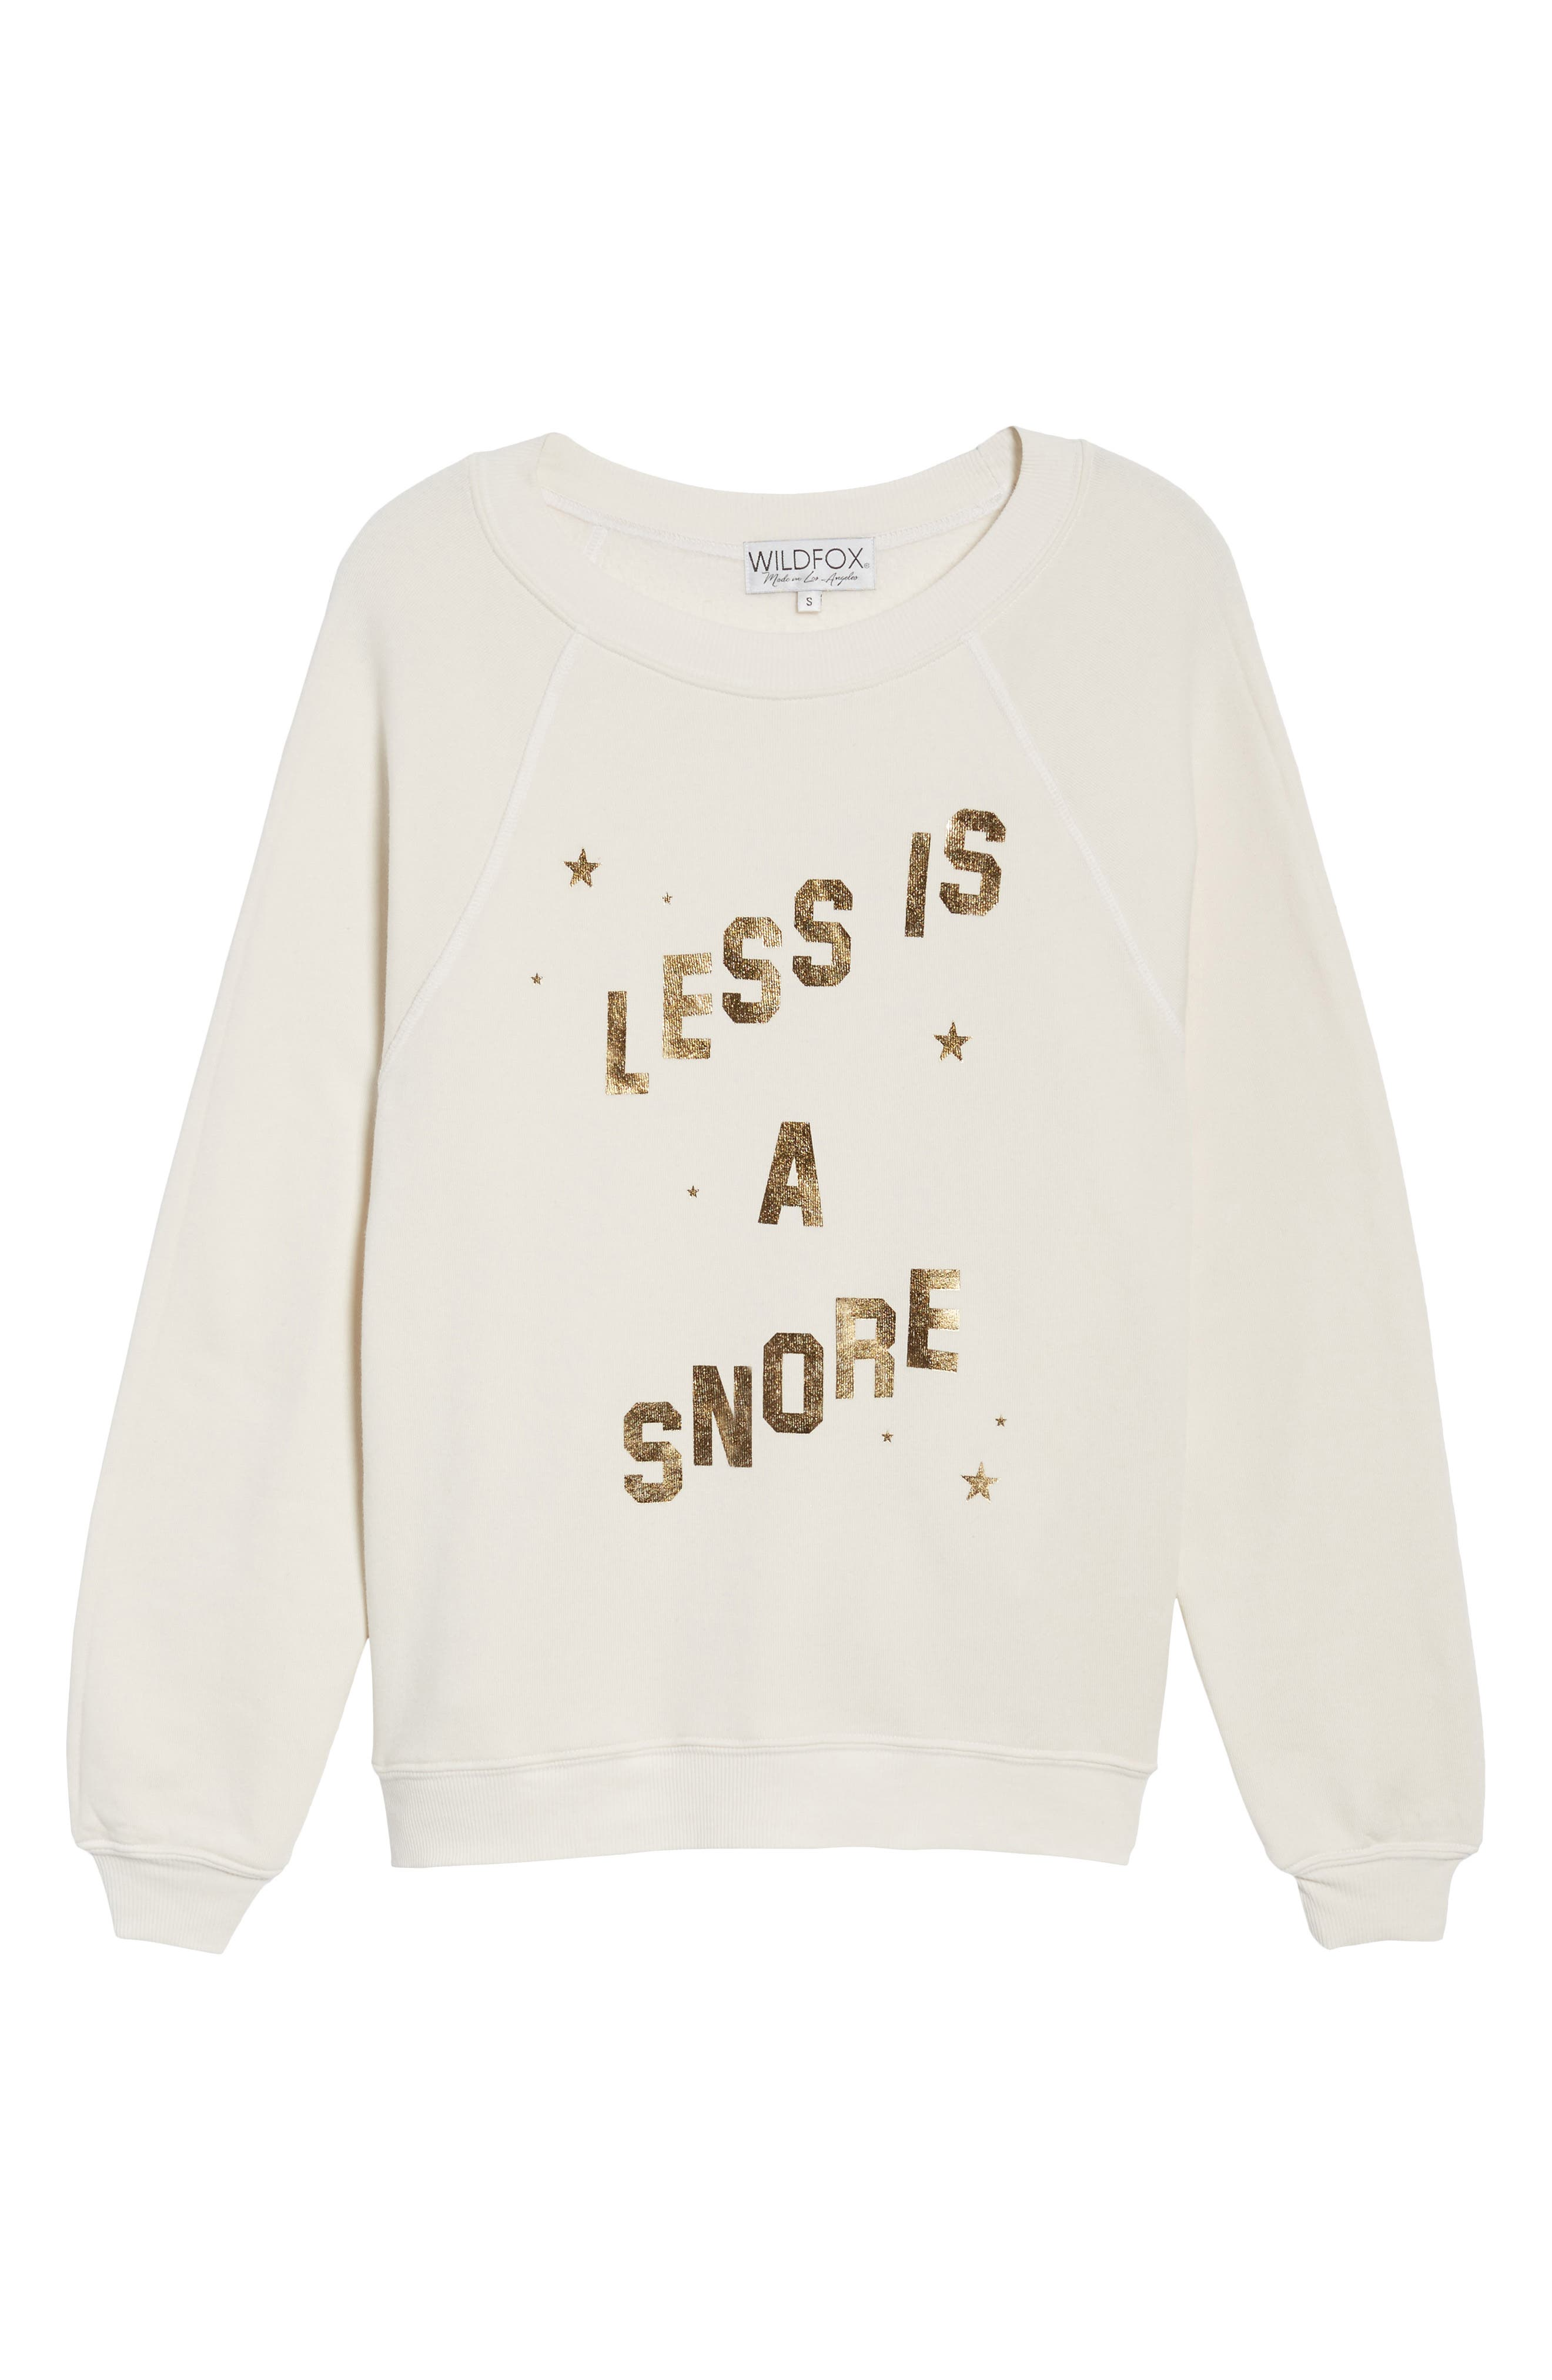 Less Is a Snore Sweatshirt,                             Alternate thumbnail 6, color,                             901